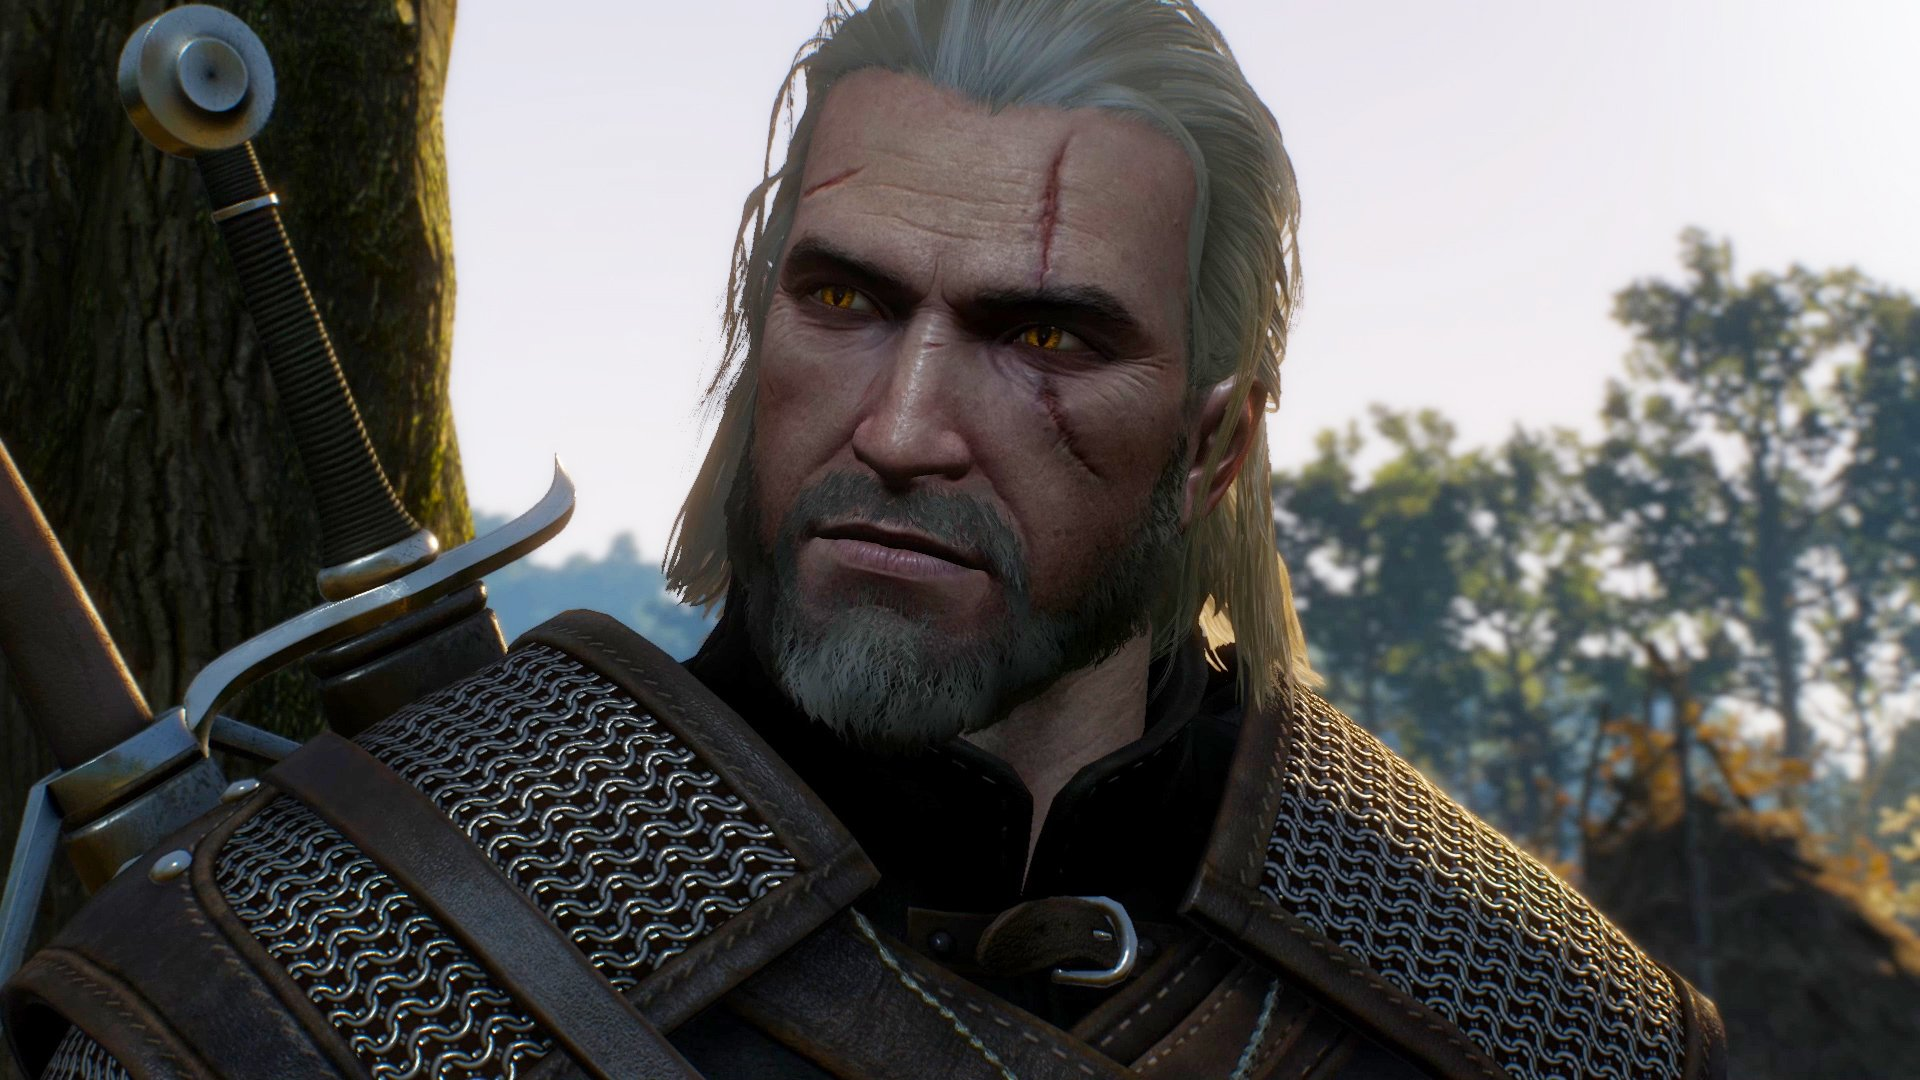 The Witcher 3 clocks in at 28.1GB on the Switch eShop screenshot